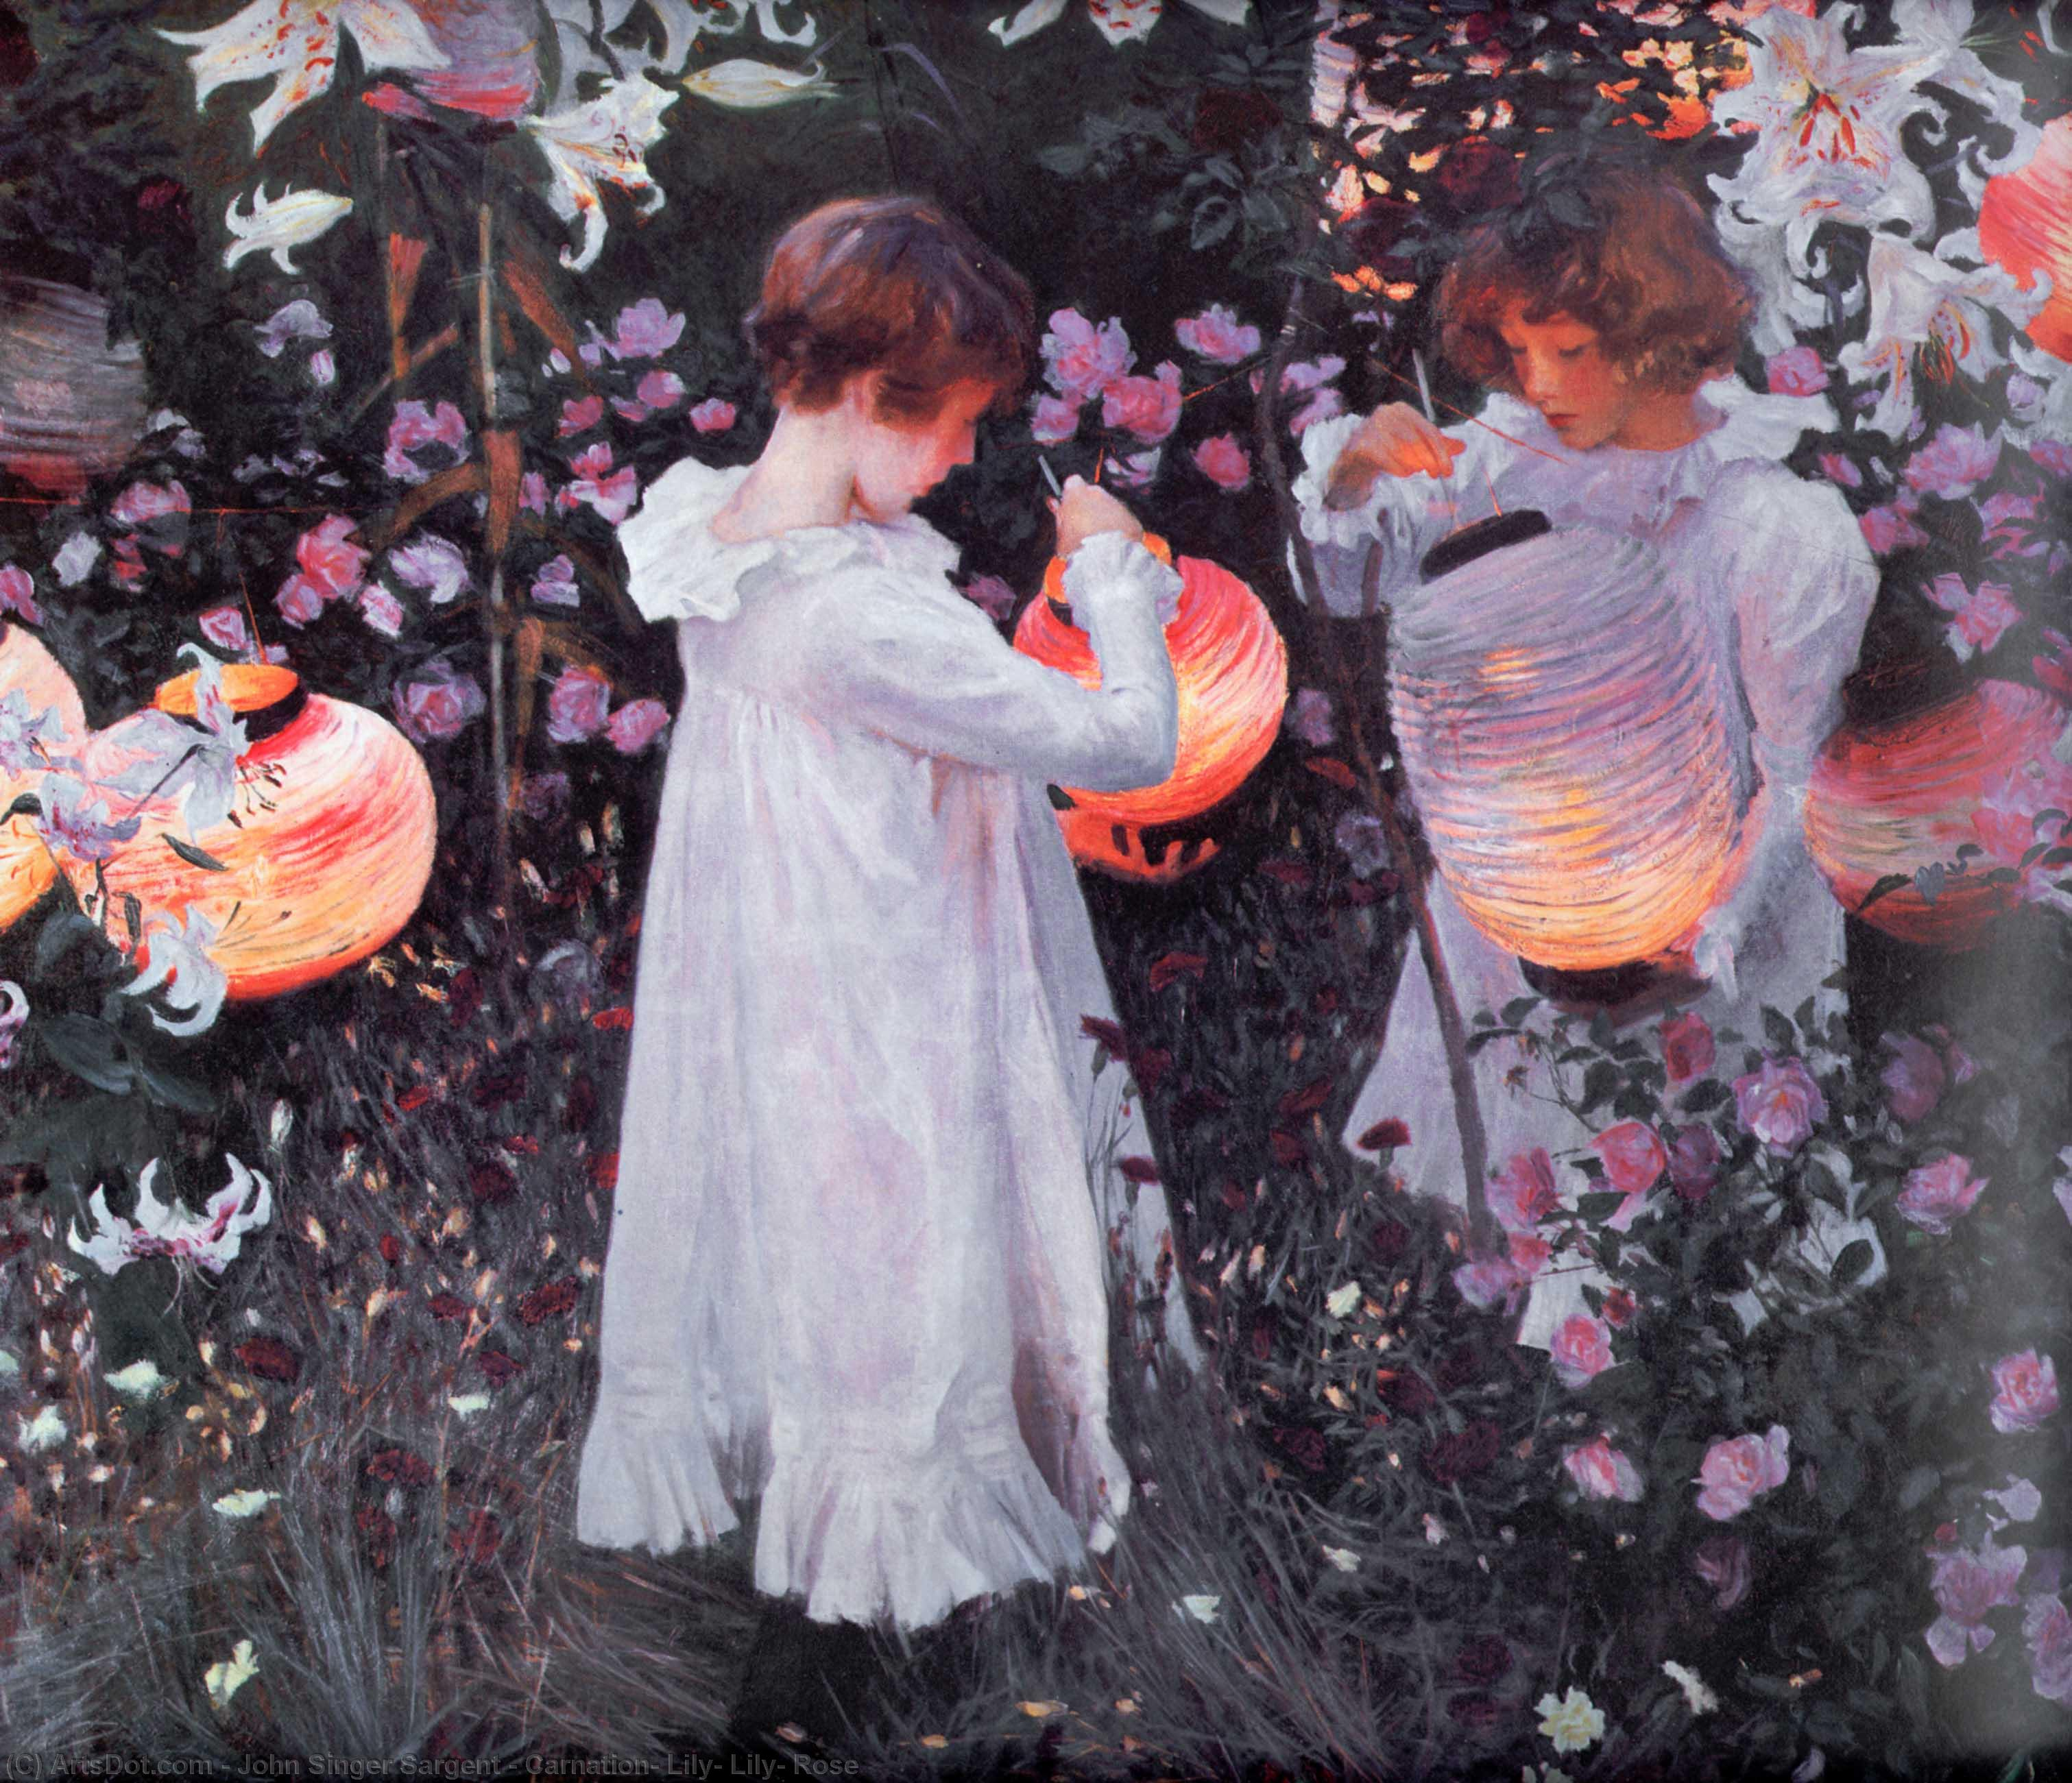 Wikioo.org - The Encyclopedia of Fine Arts - Painting, Artwork by John Singer Sargent - Carnation, Lily, Lily, Rose